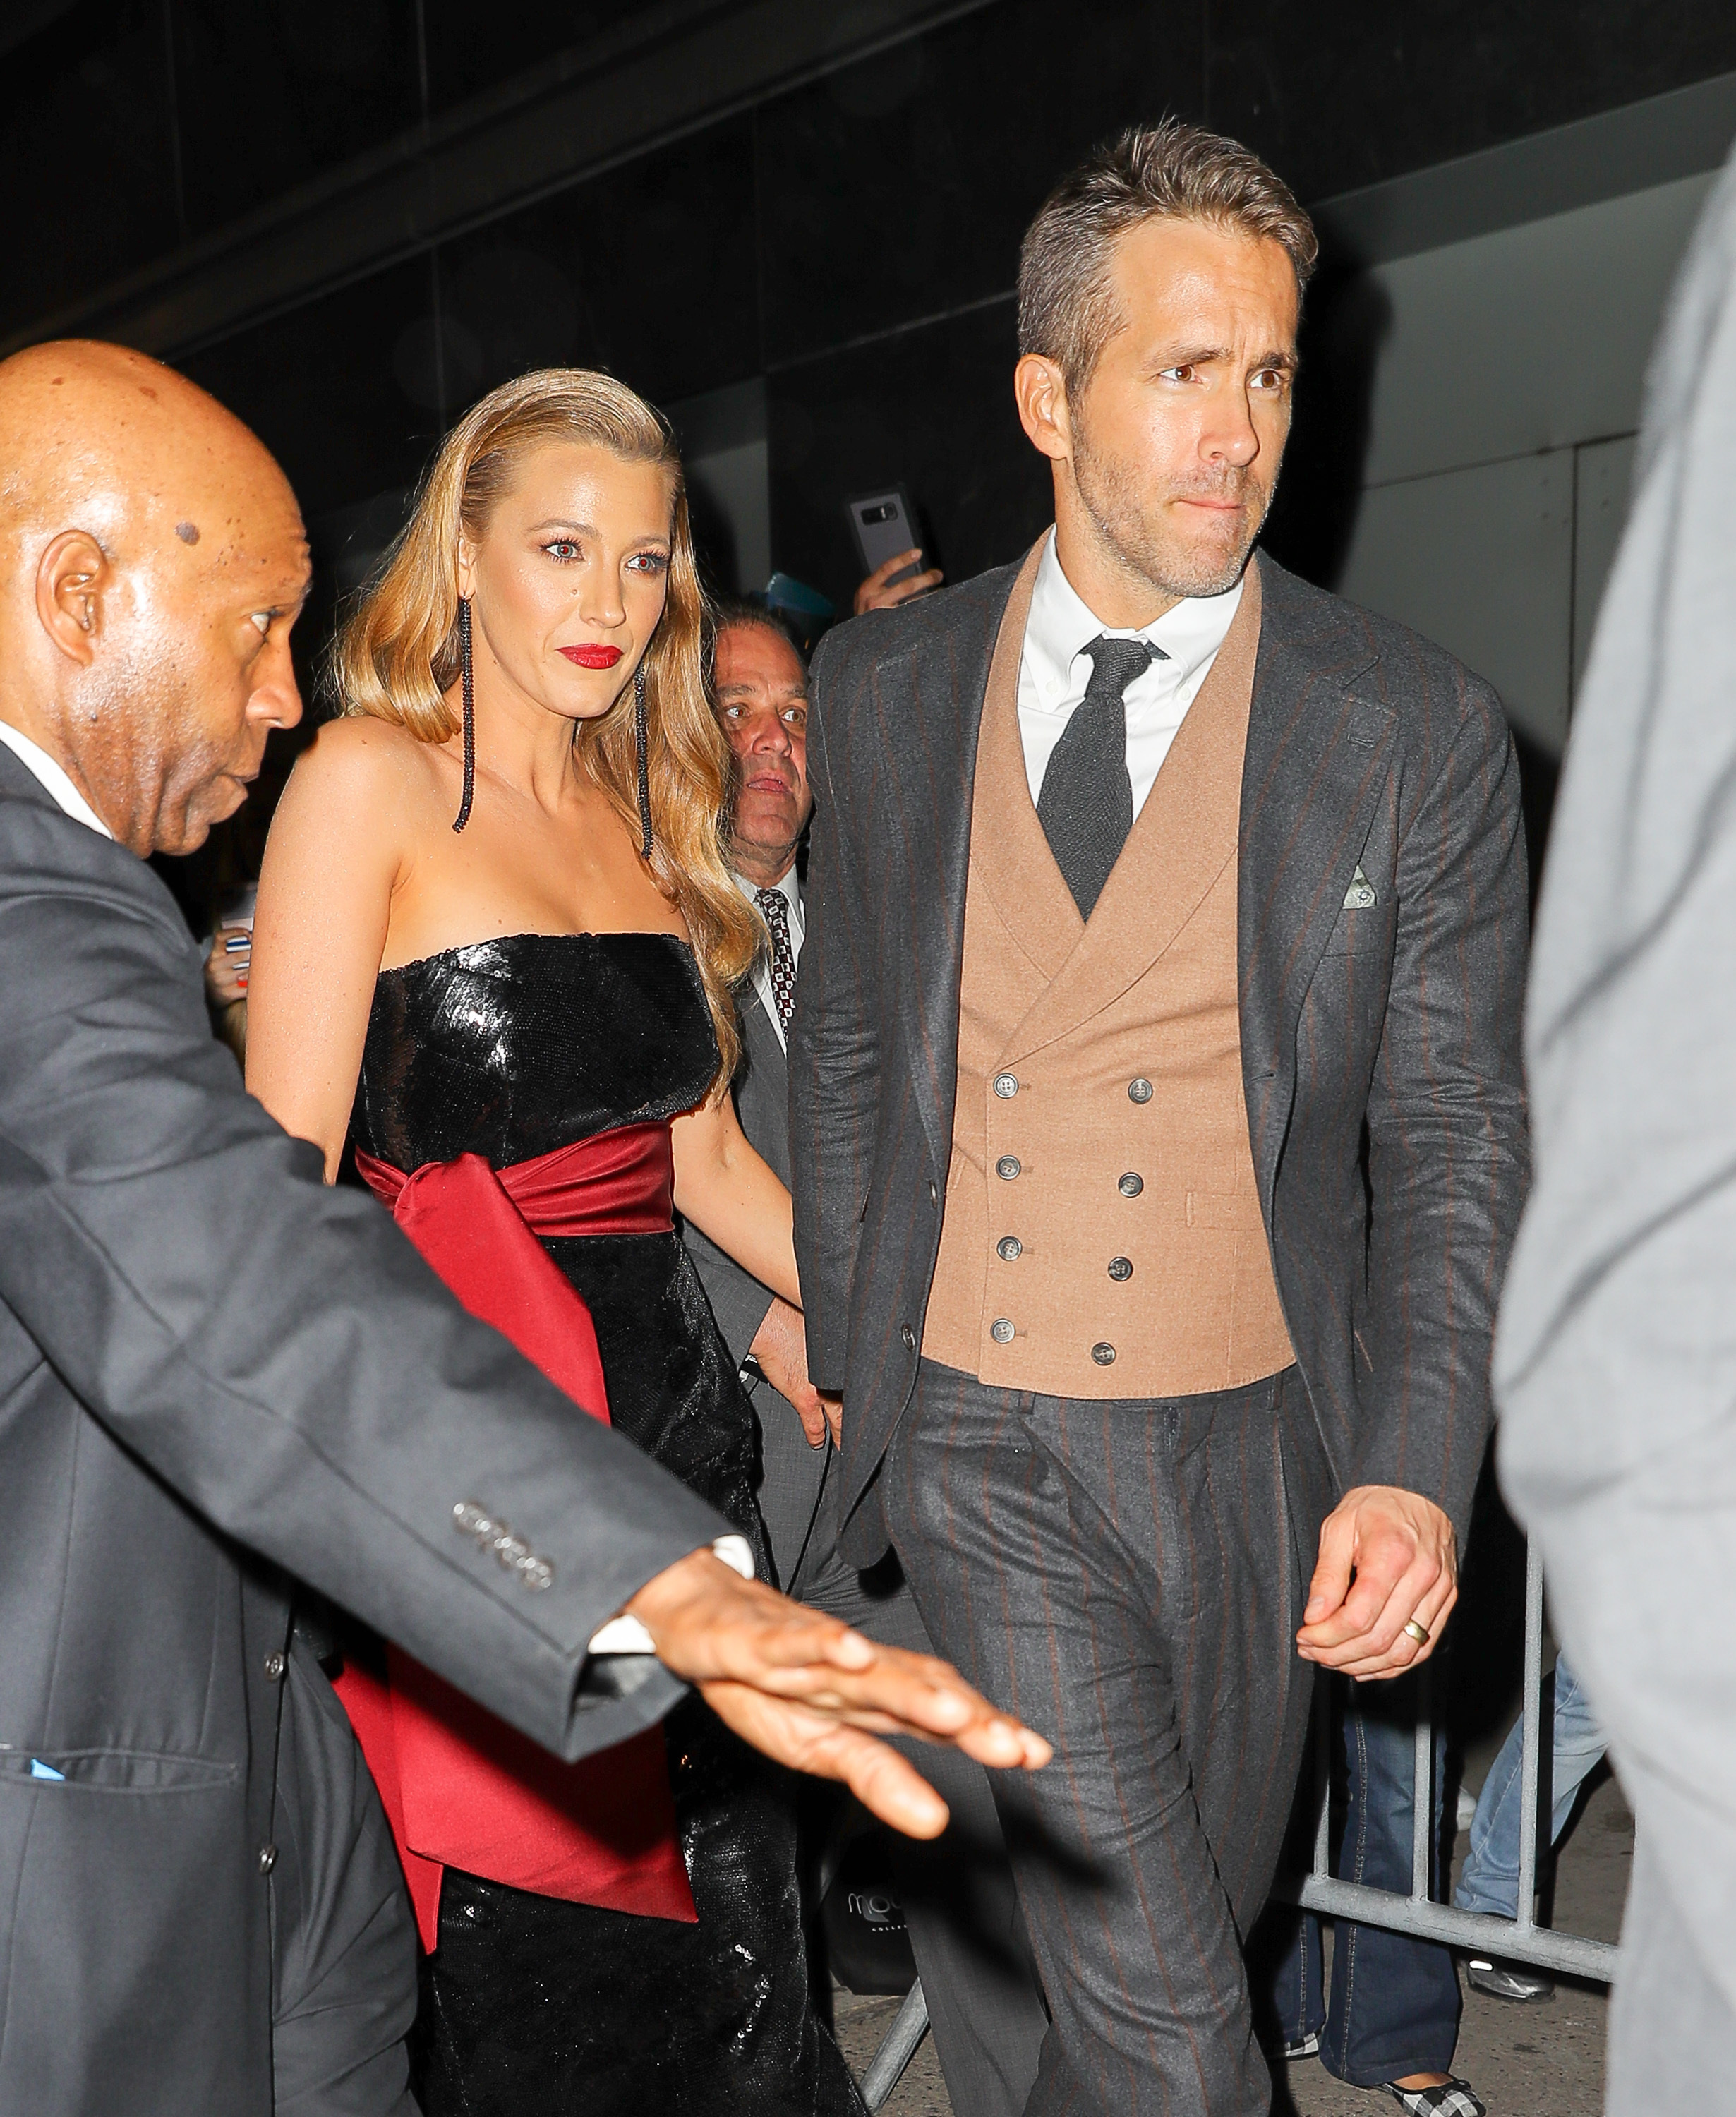 Blake Lively and Ryan Reynolds were seen hand in hand while leaving the Loews Lincoln Square after attending the DeadPool 2 premiere in New York City on May 14, 2018.